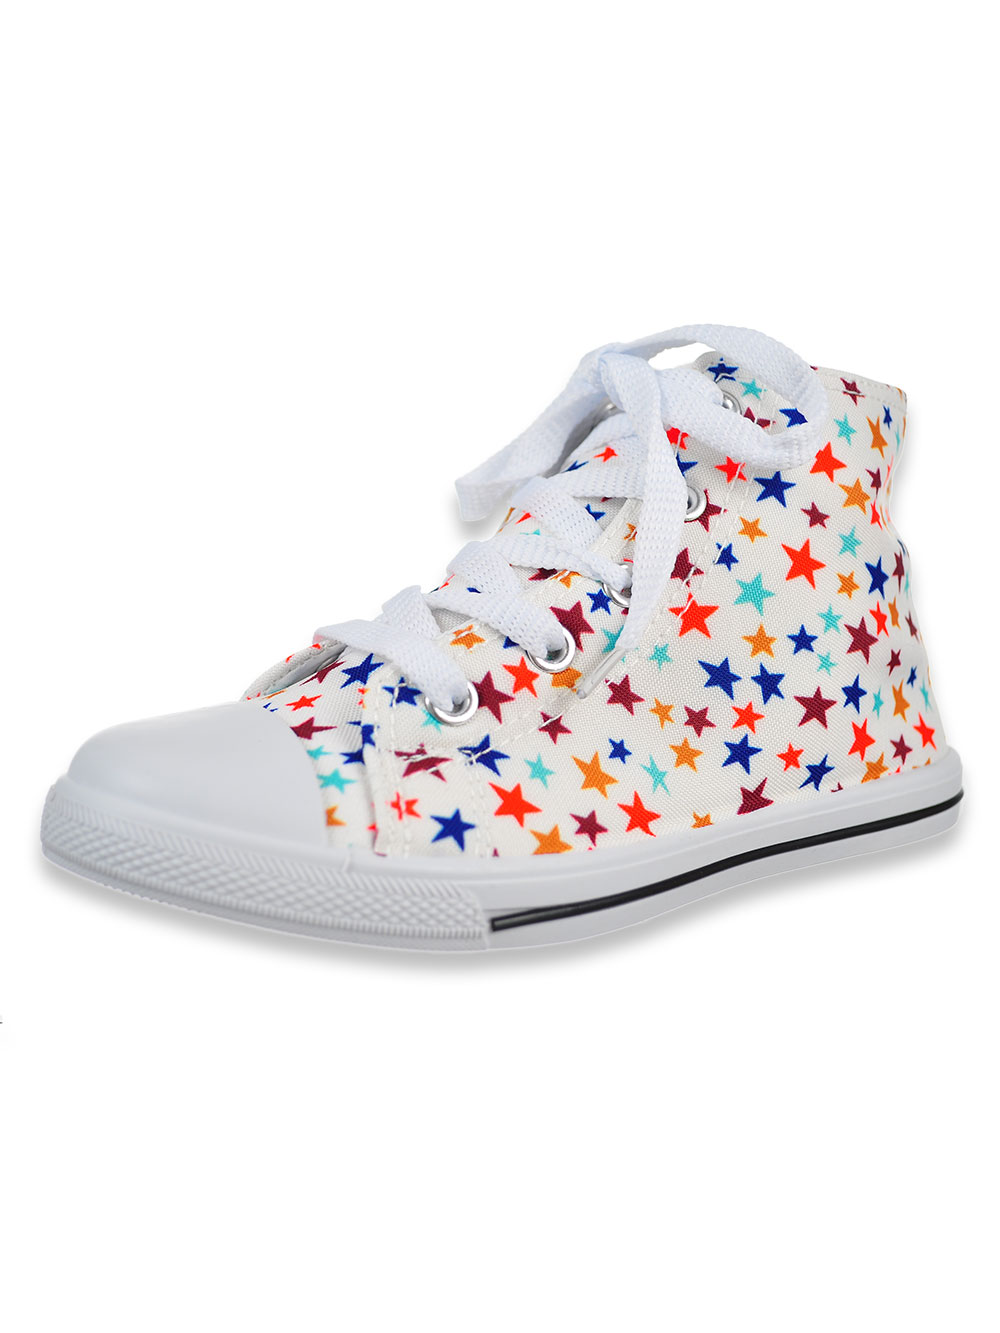 Girls White and Multicolor Sneakers